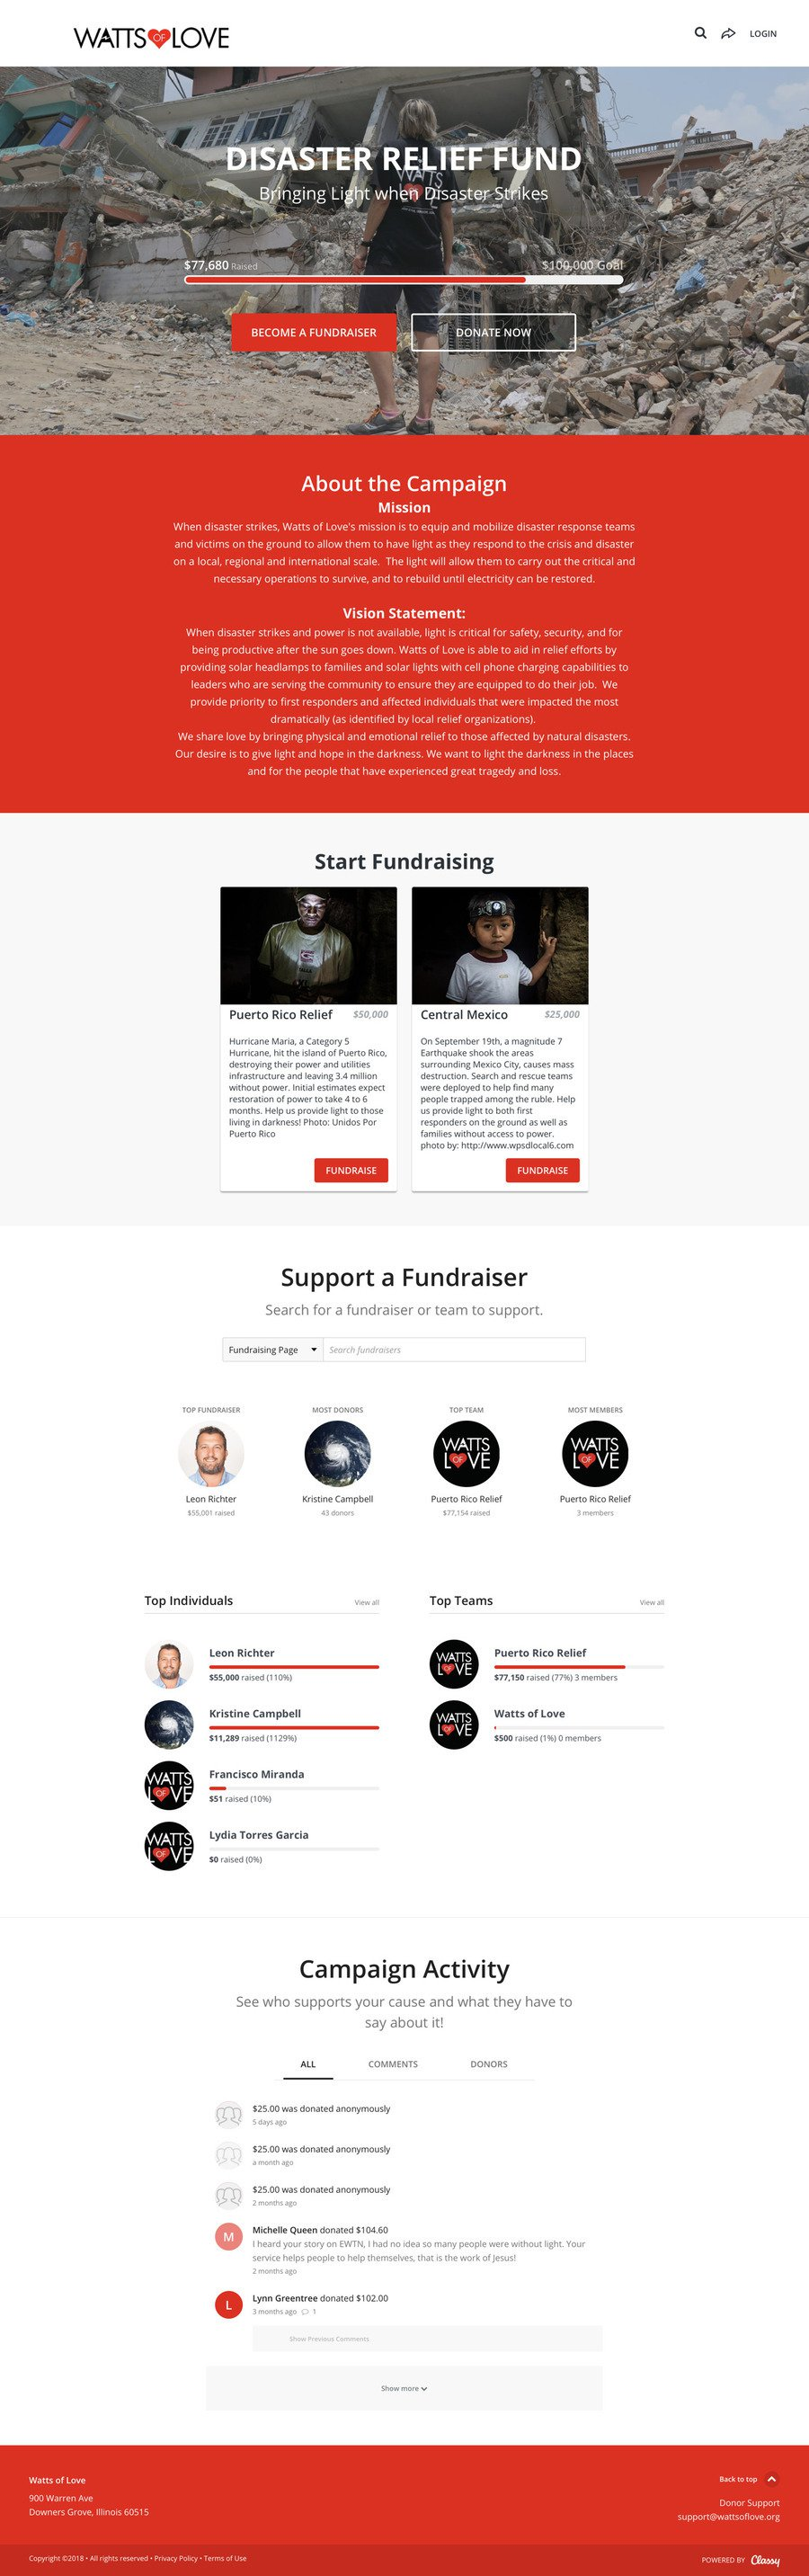 DISASTER RELIEF FUND , a Peer-to-Peer campaign on Classy.org